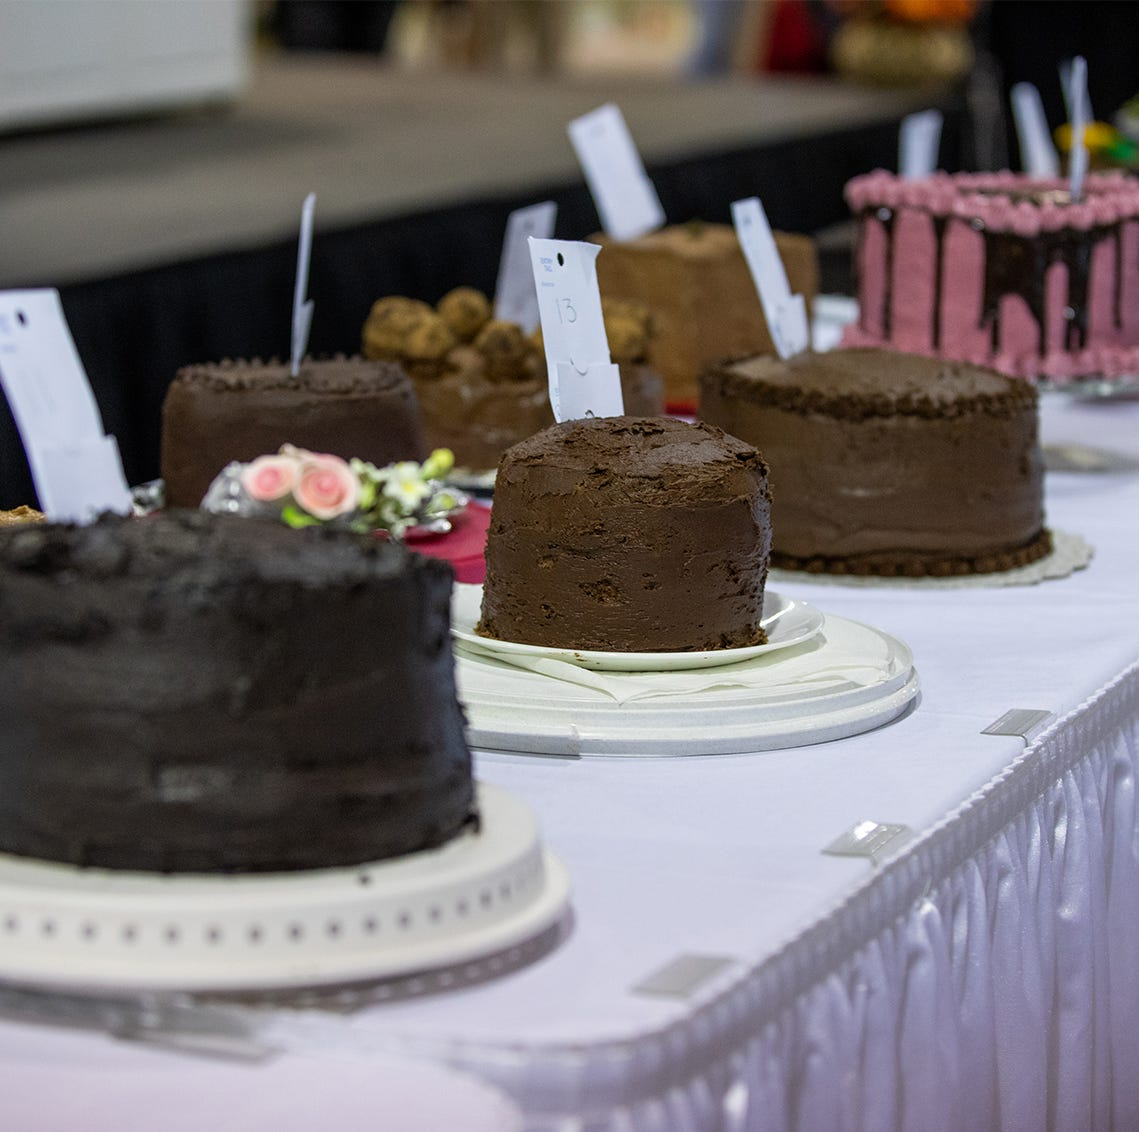 See who won this year's Gerry Frank Chocolate Layer Cake Contest at the state fair